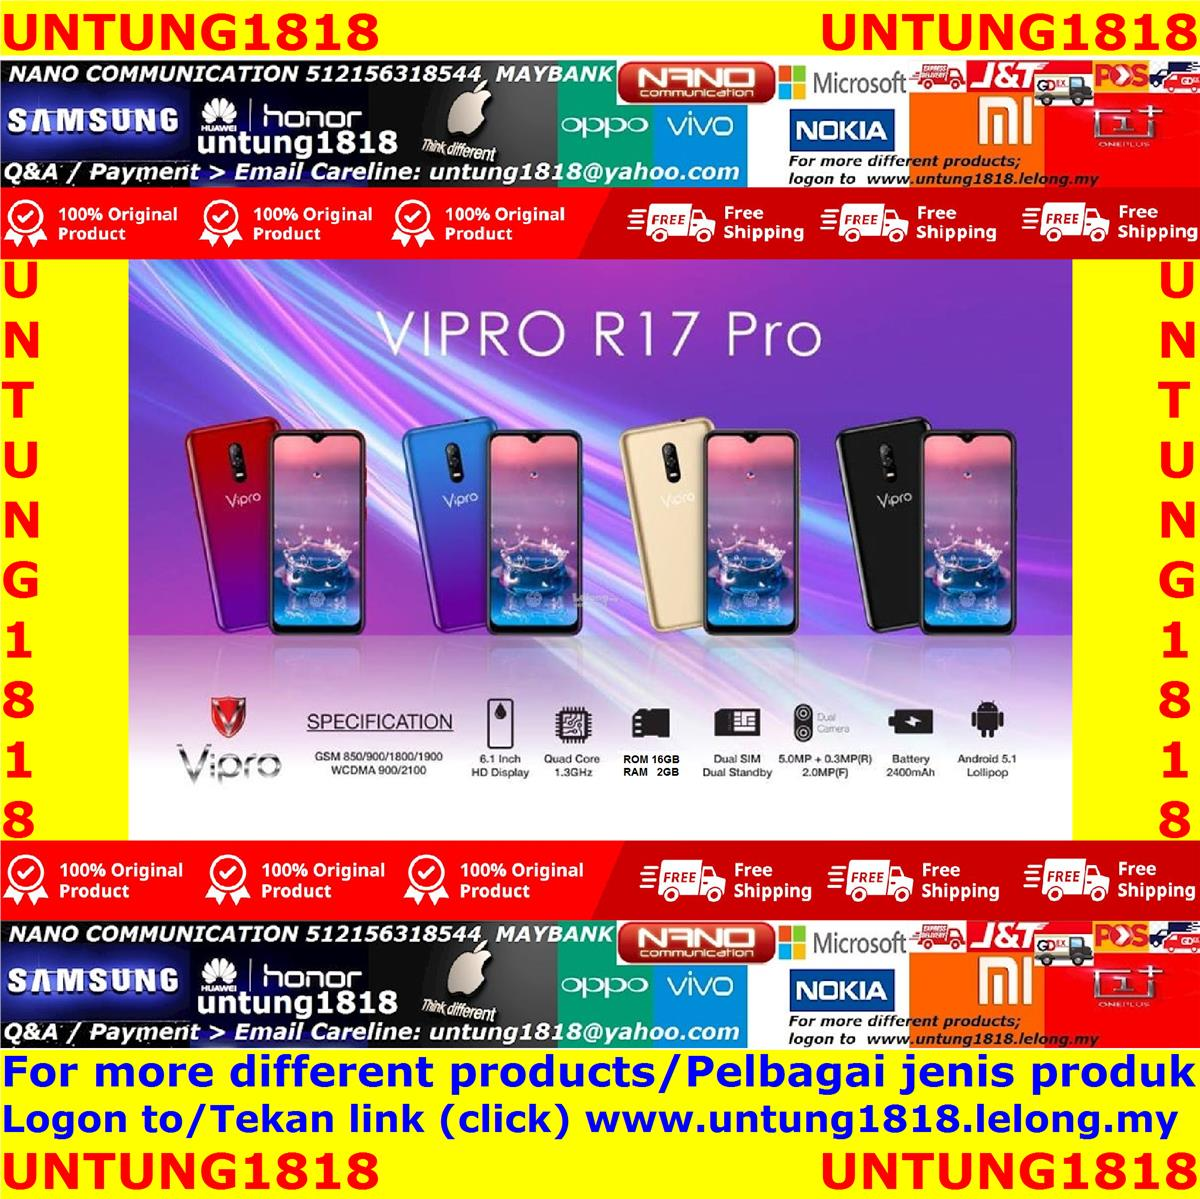 ORIGINAL.ViPro R17 Pro 6.1 inch Android Smartphone